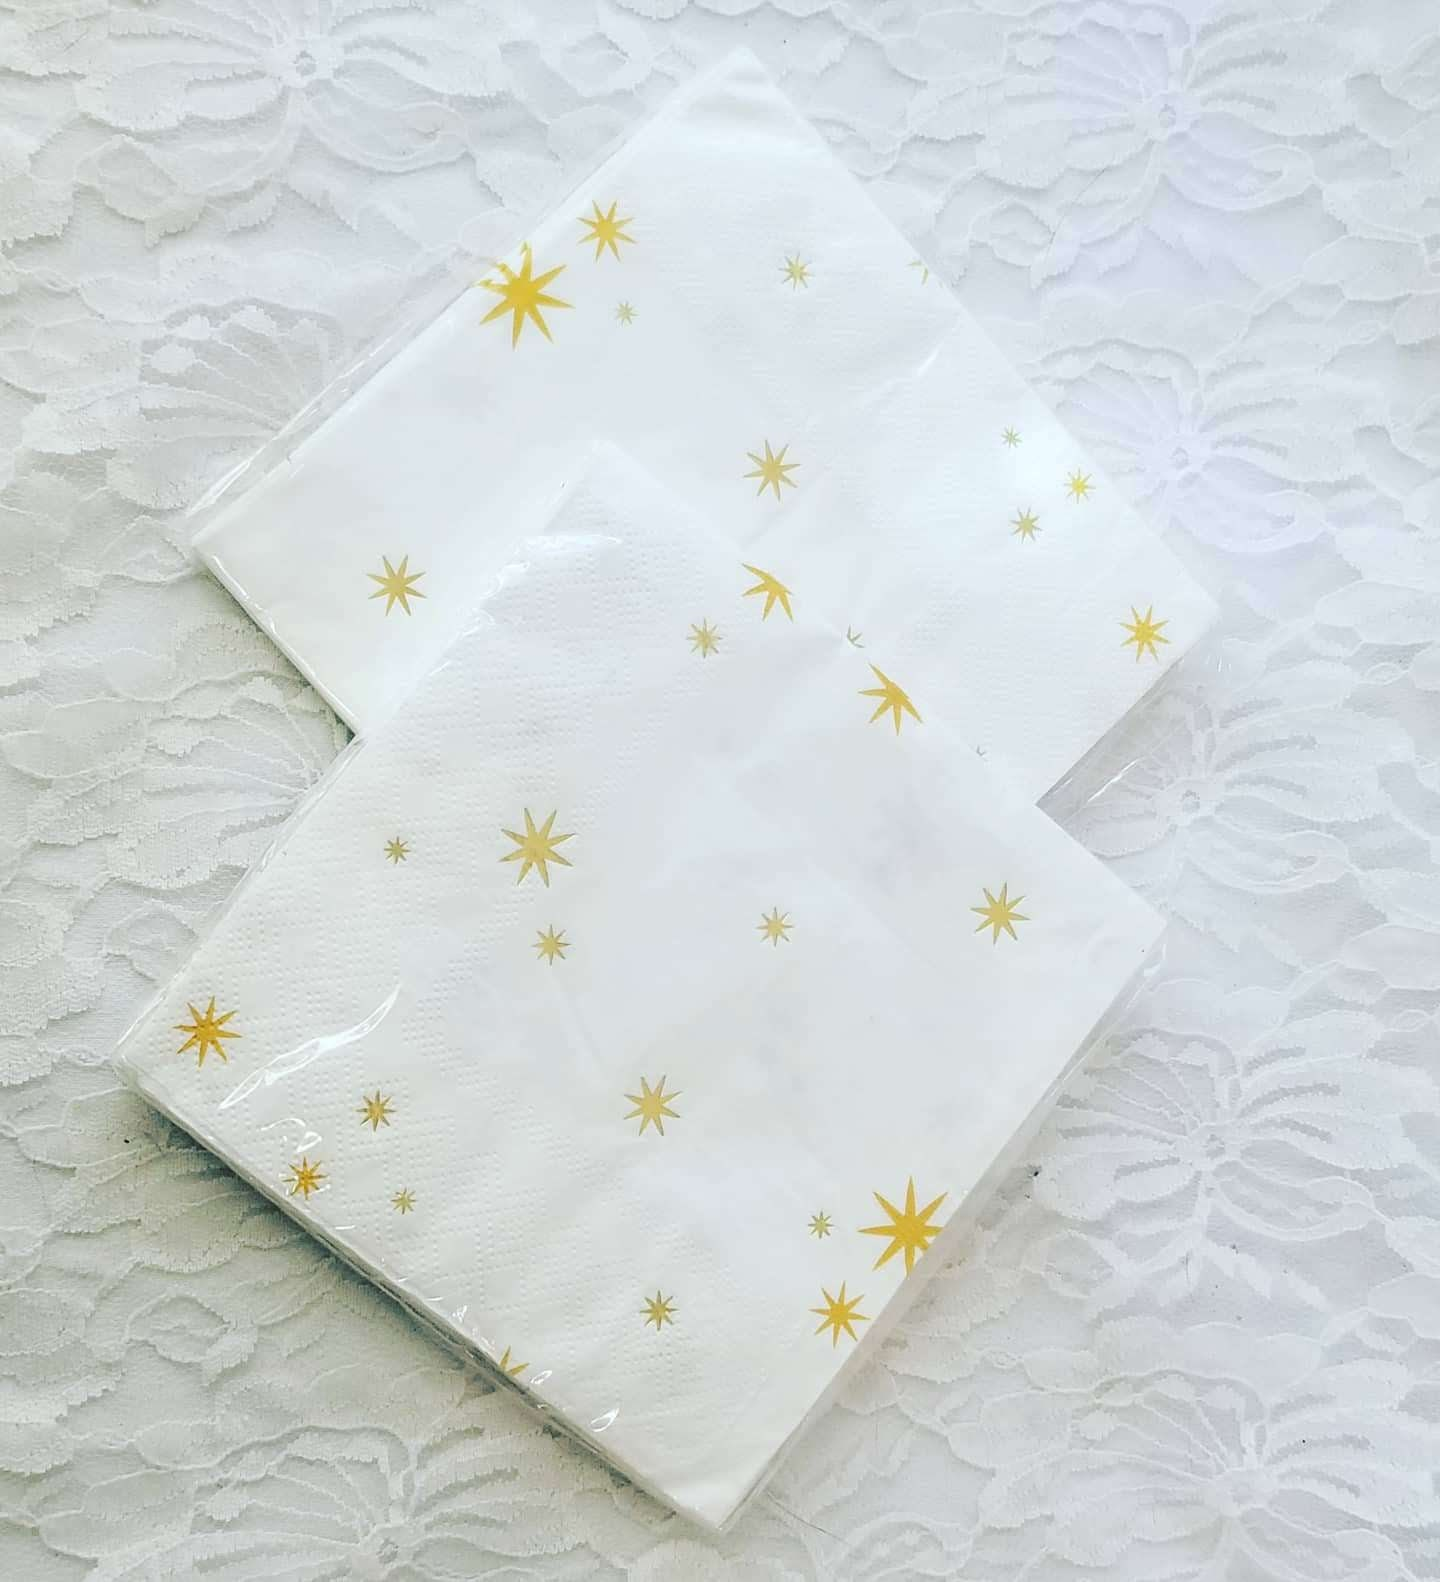 Lot Of 2 Packs White Gold Star Celestial Napkins Tissue Paper For Decoupage Crafts 10 Pieces 3 Ply 9 8 By 9 8